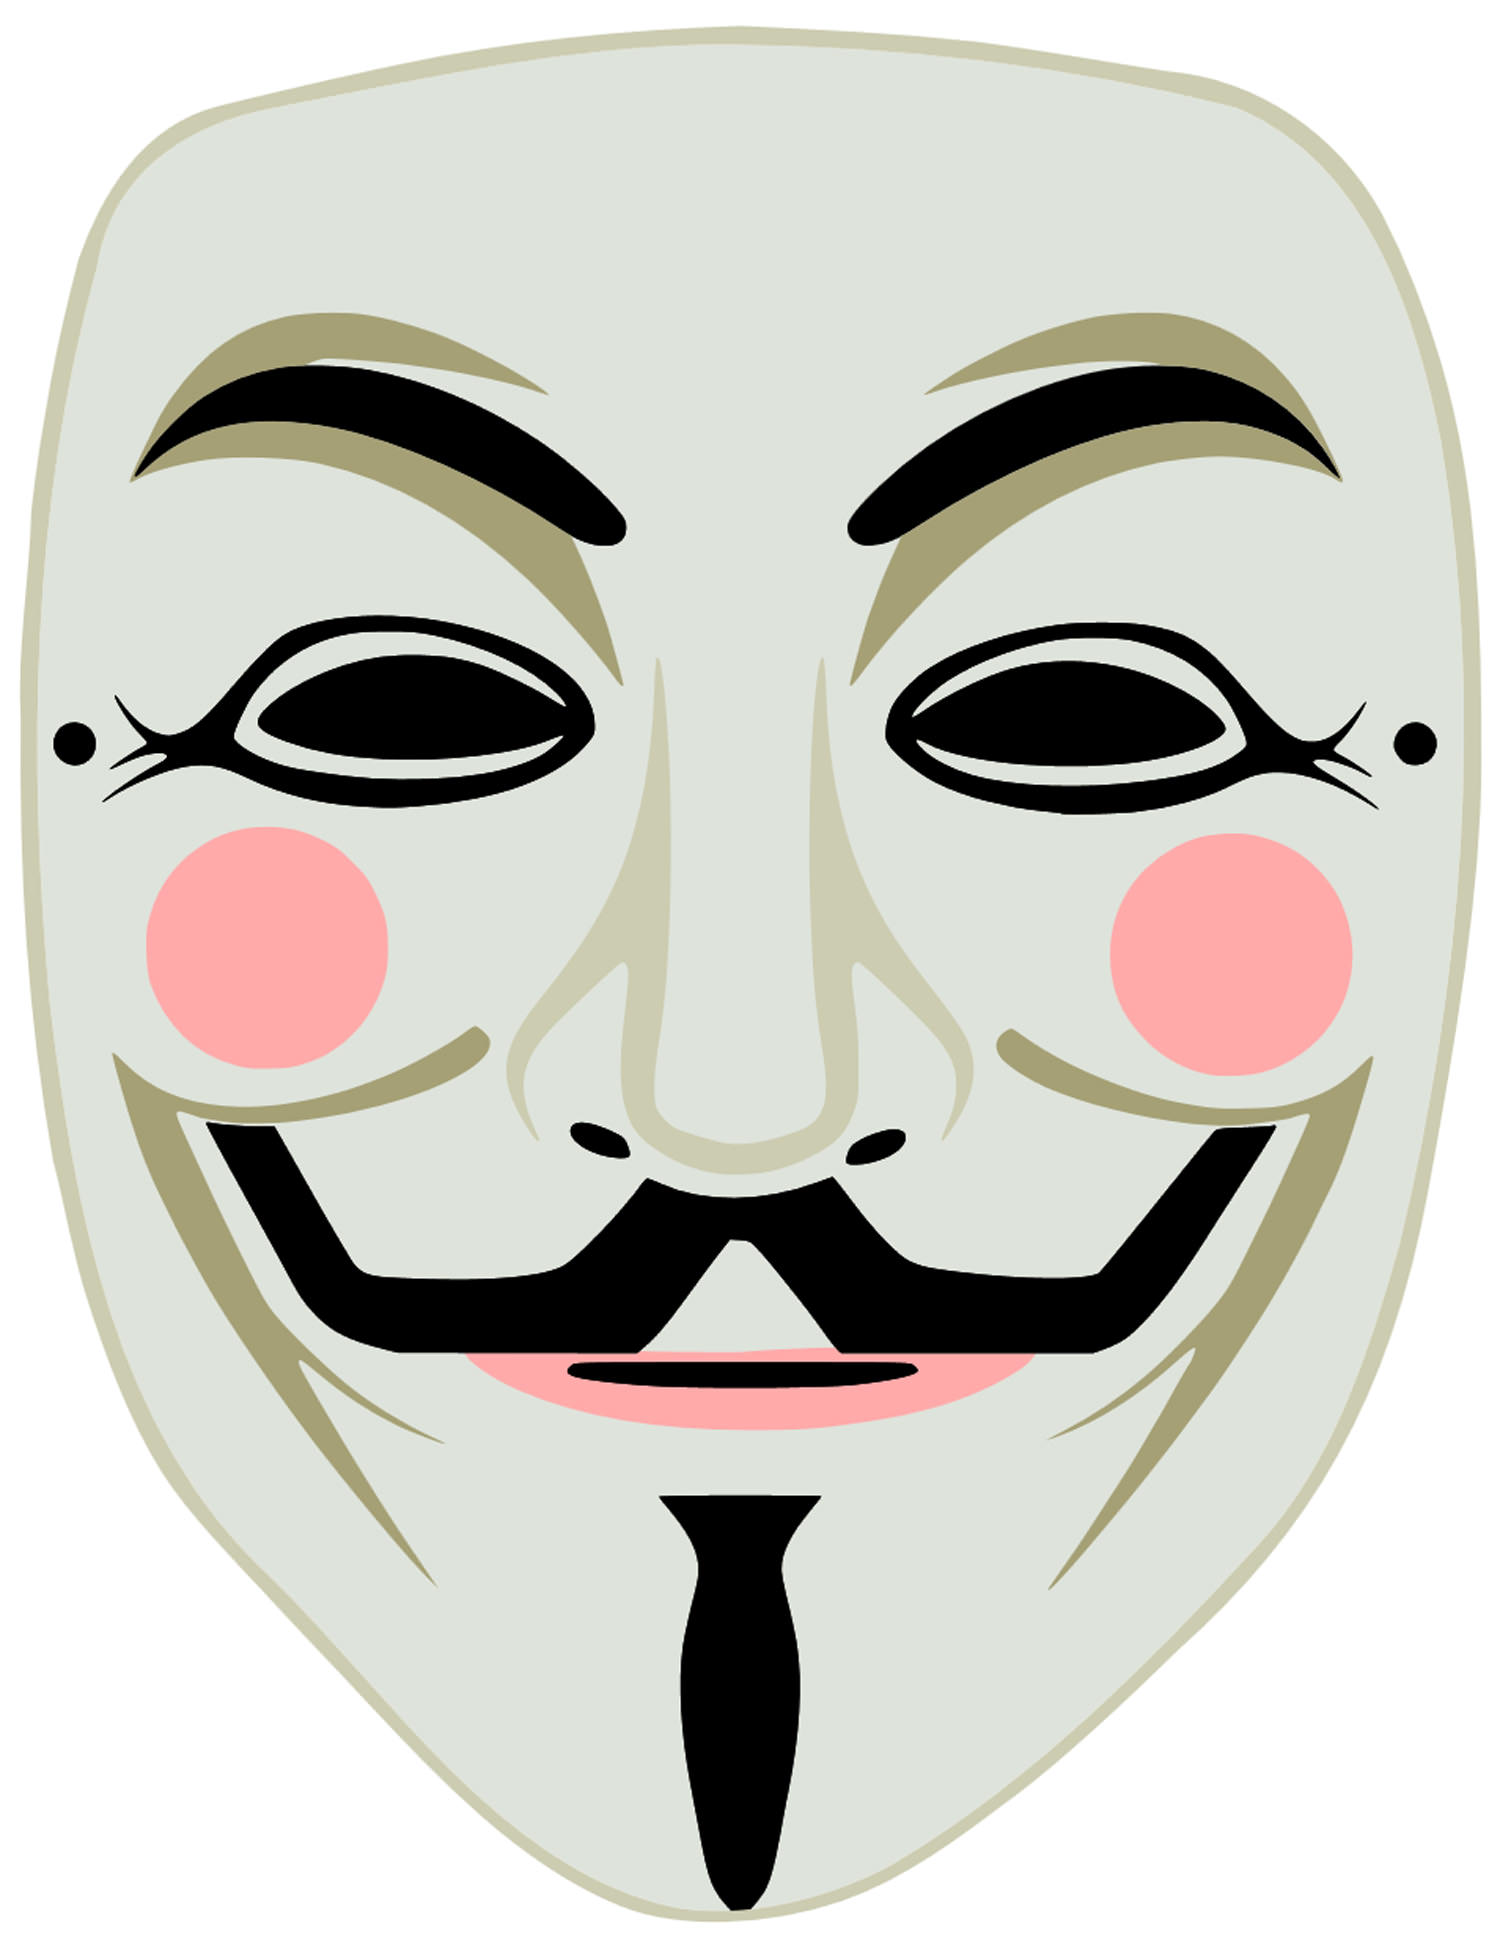 3 High Quality Printable Vendetta Guy Fawkes Mask Cut Out